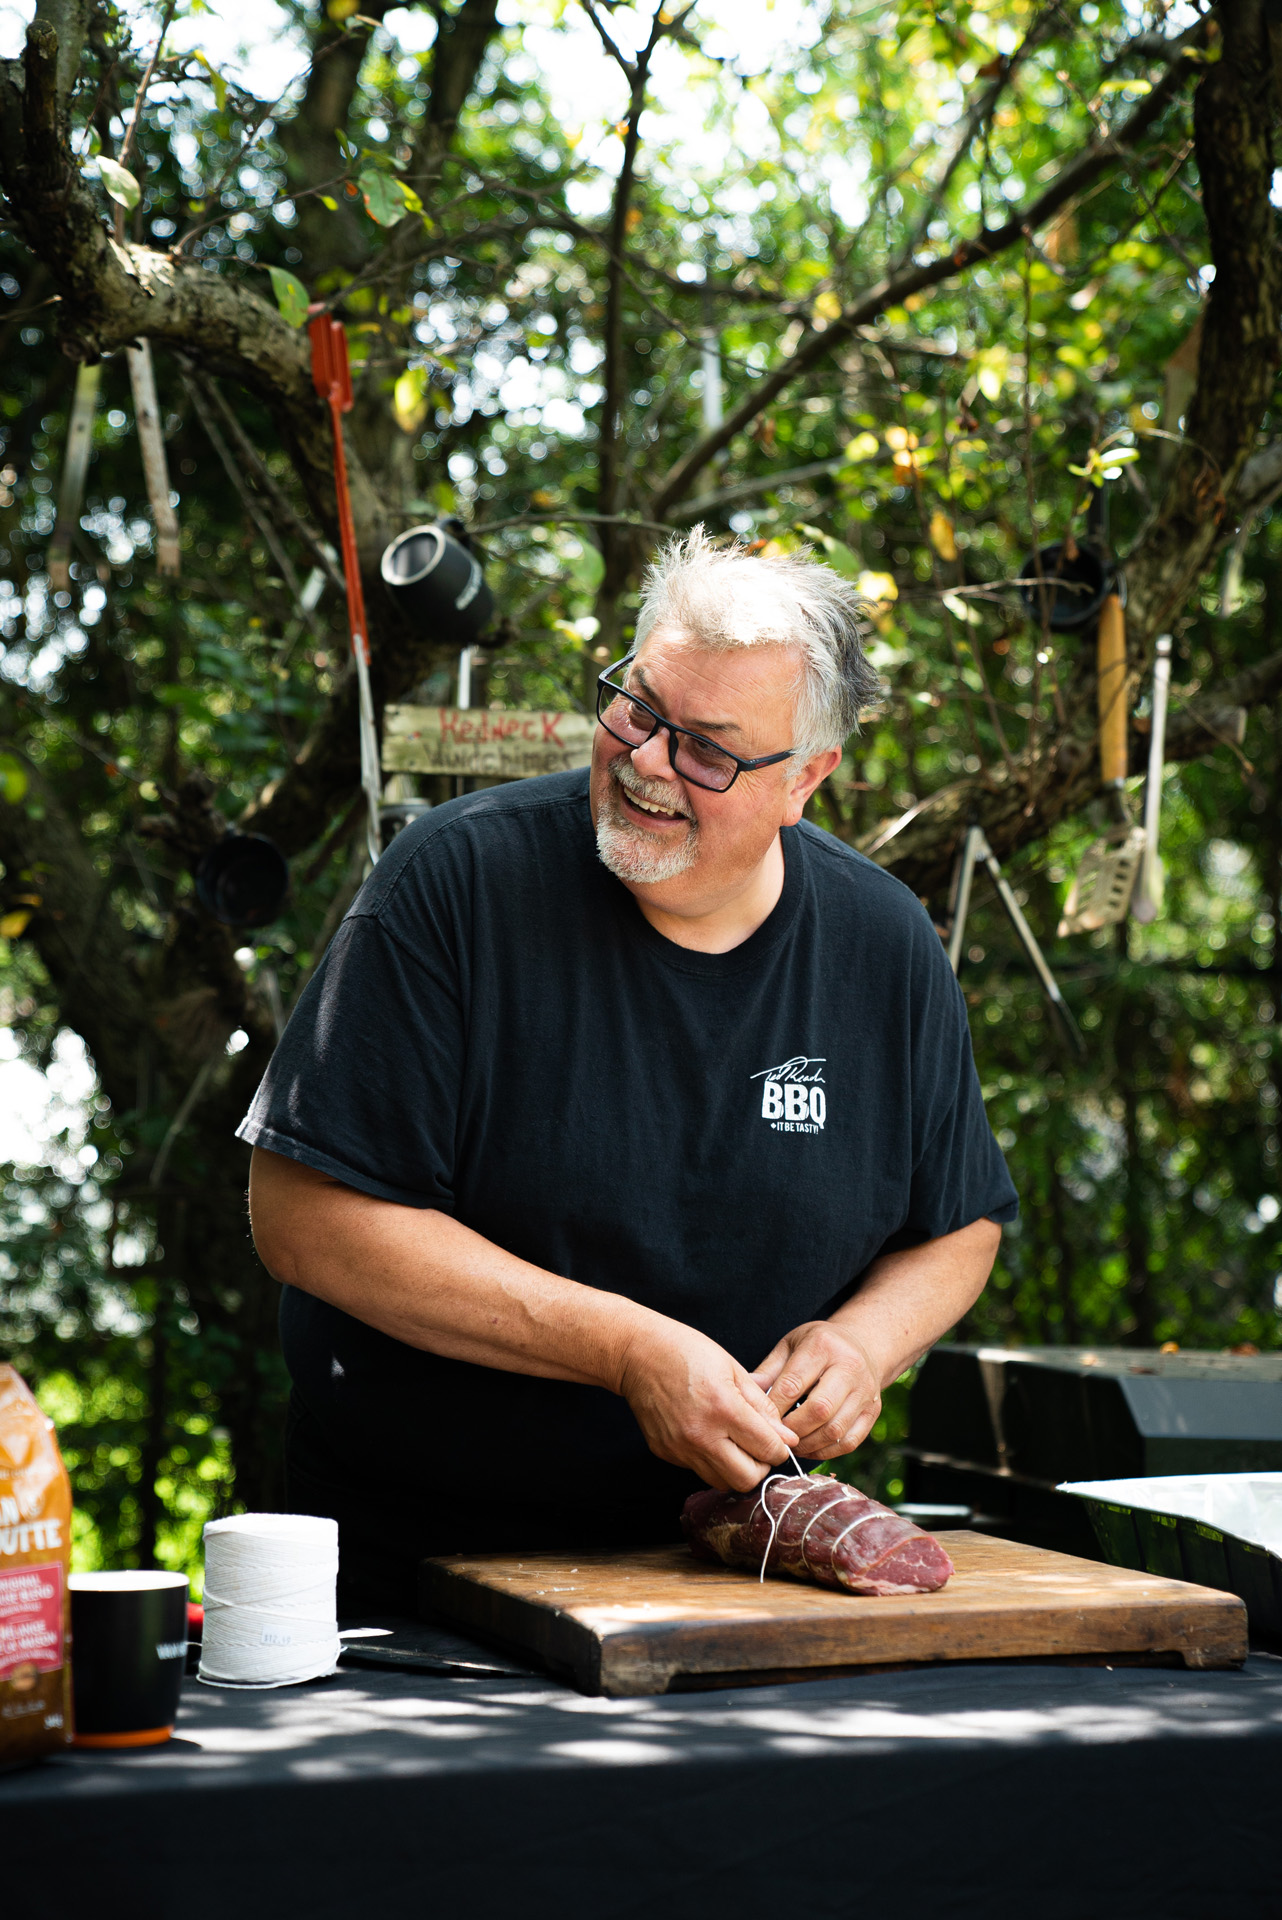 chef Ted Reader tying up a piece of meat with rope cooking outside by Bruno Florin for Van Houtte 100th anniversary